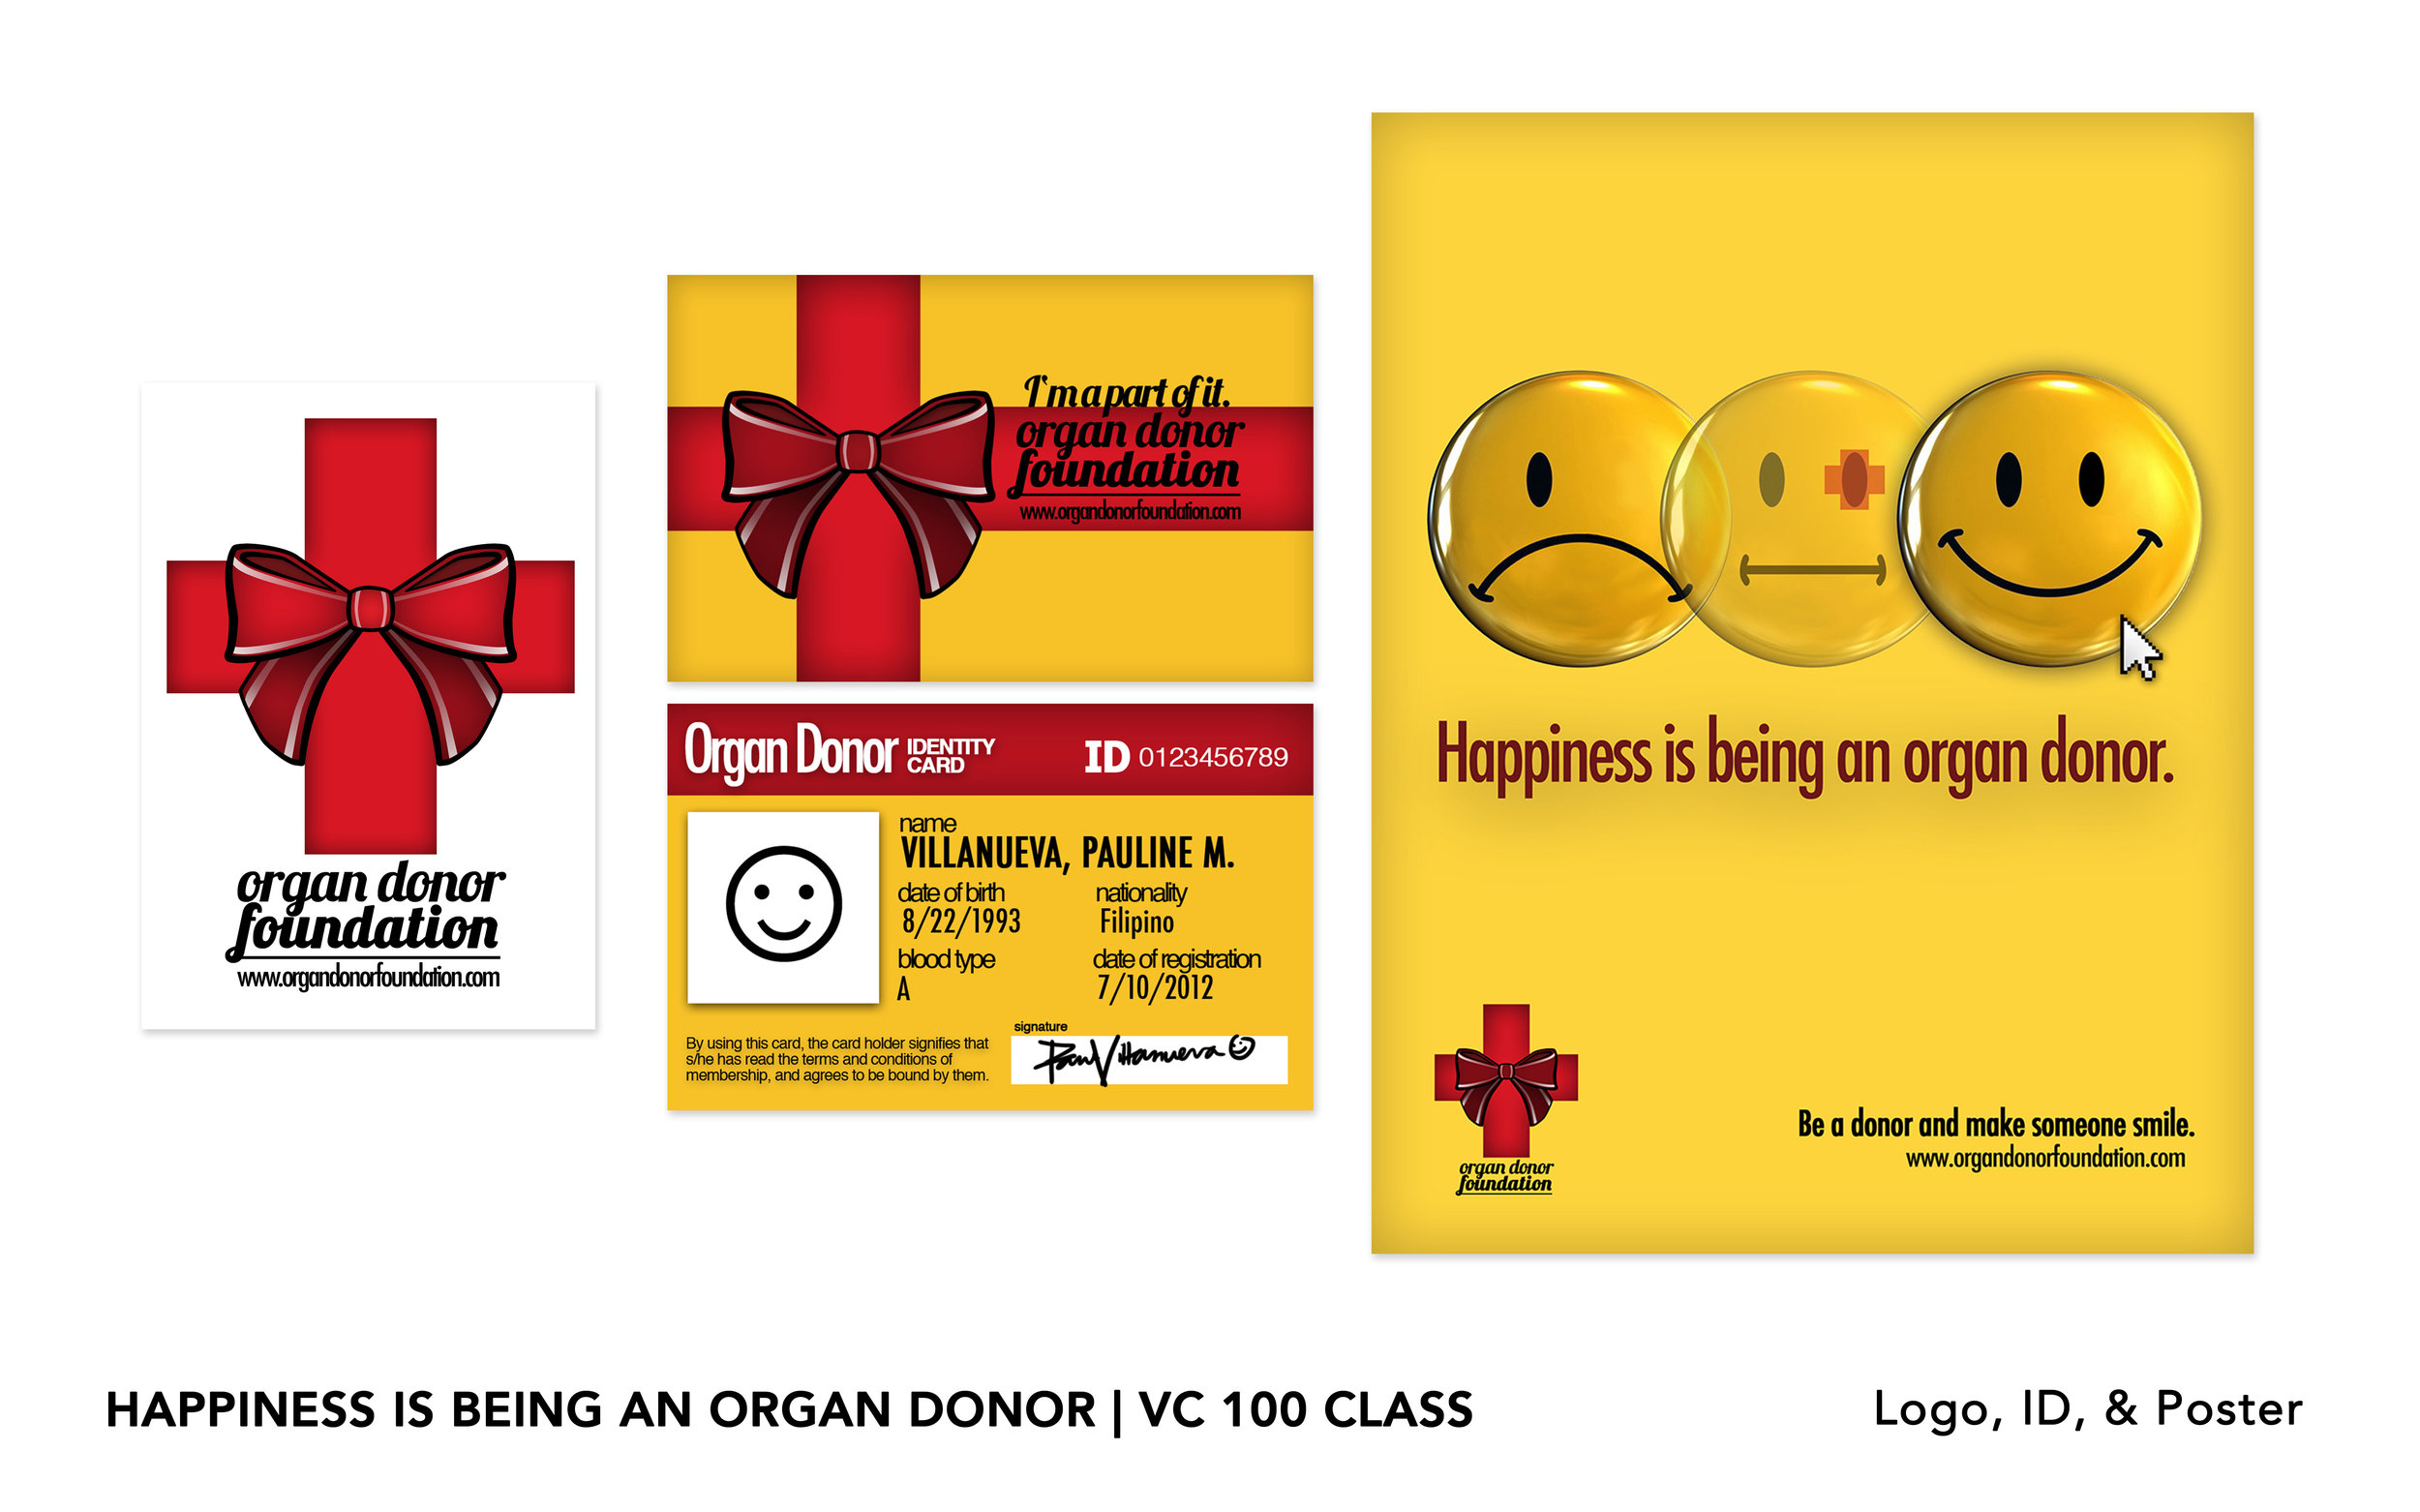 08.1 Happiness is Being an Organ Donor.jpg